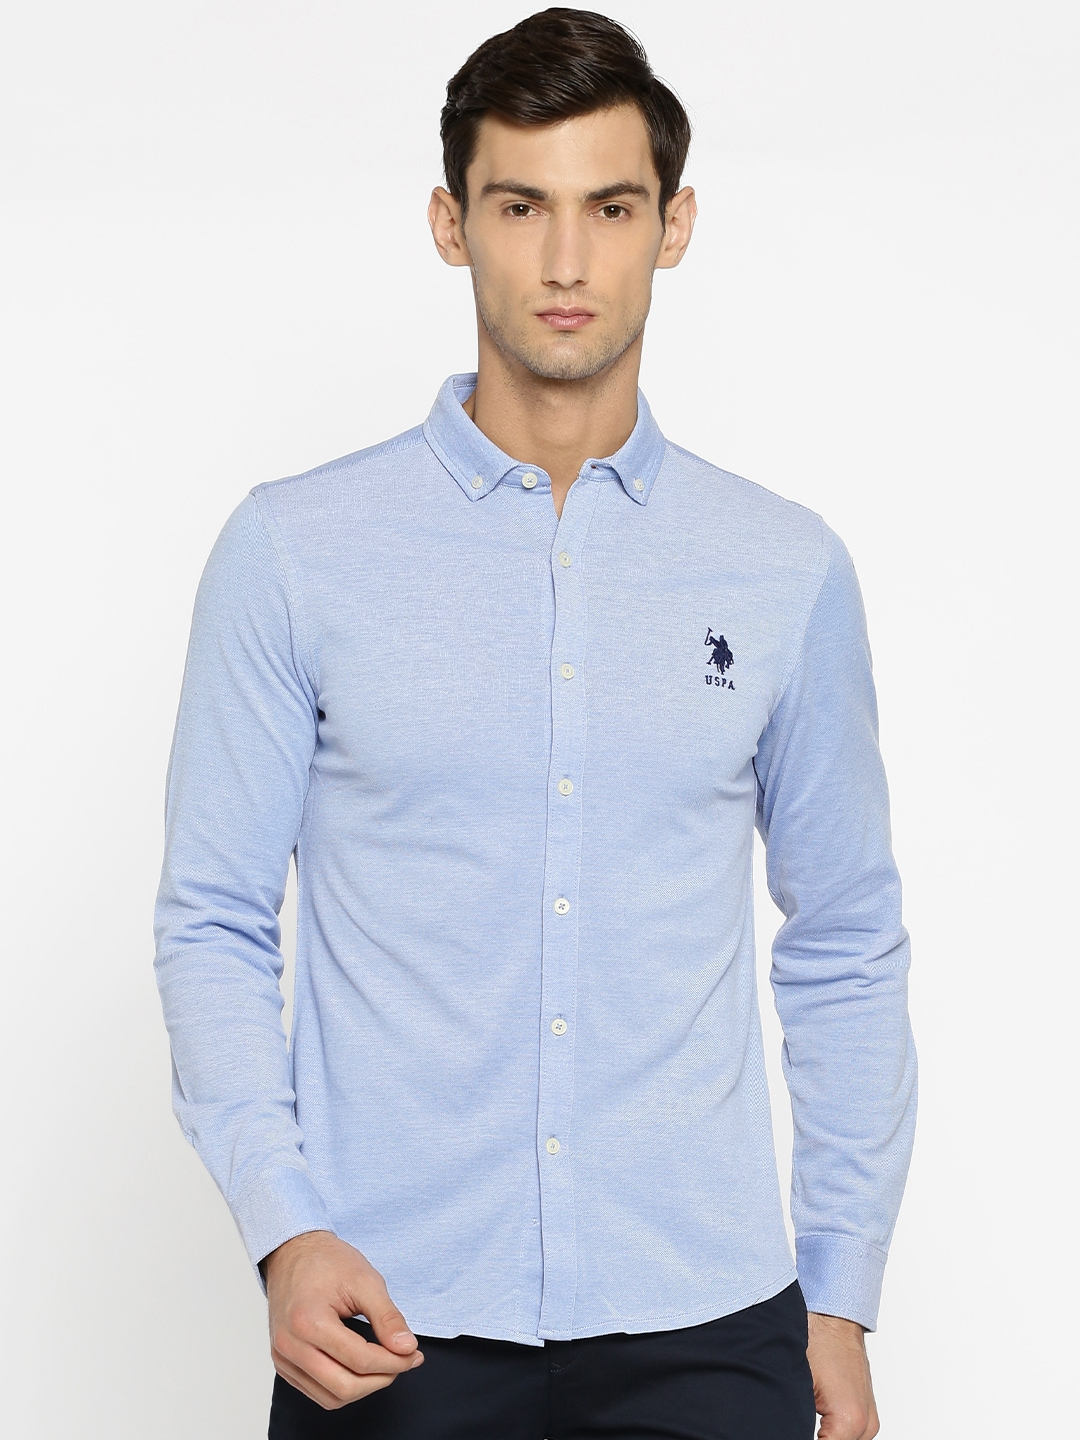 U.S. Polo Assn. Men Blue Tailored Fit Solid Casual Shirt image